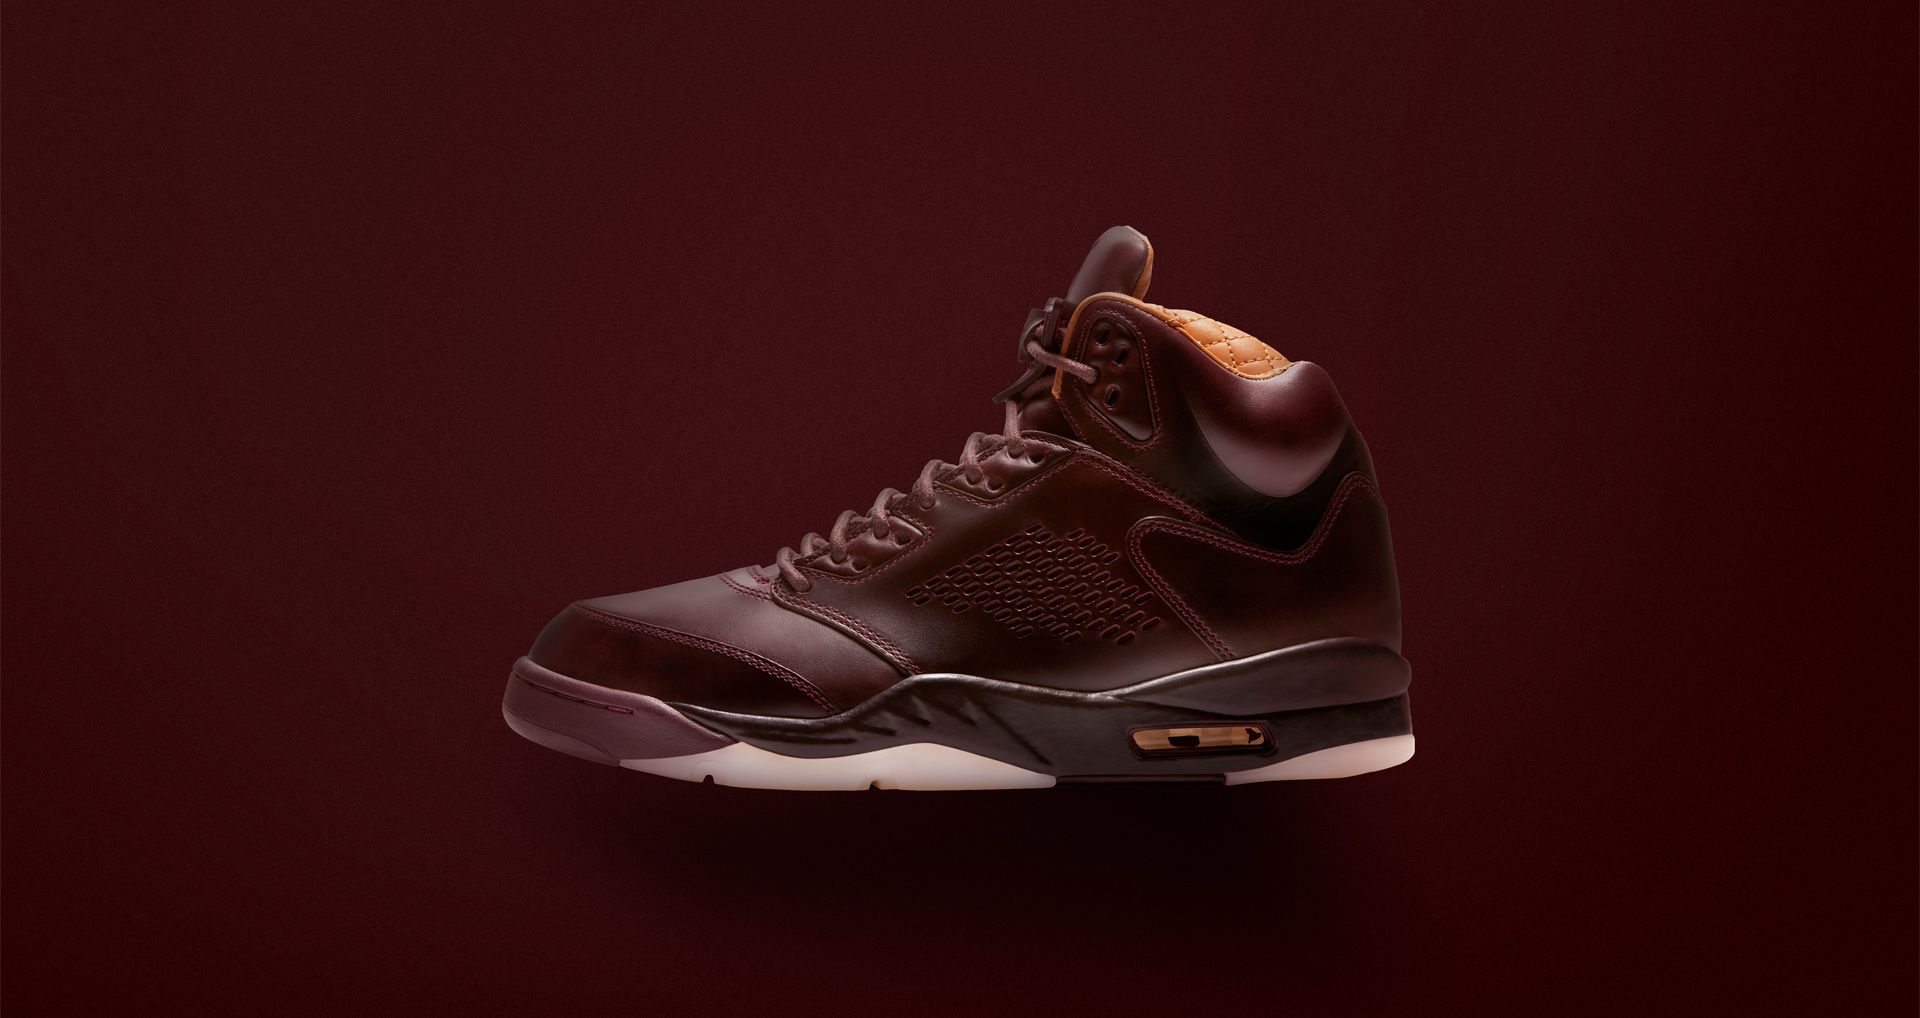 reputable site e5e23 89ae3 Air Jordan 5 Retro Premium  Bordeaux  Release Date. Nike⁠+ SNKRS